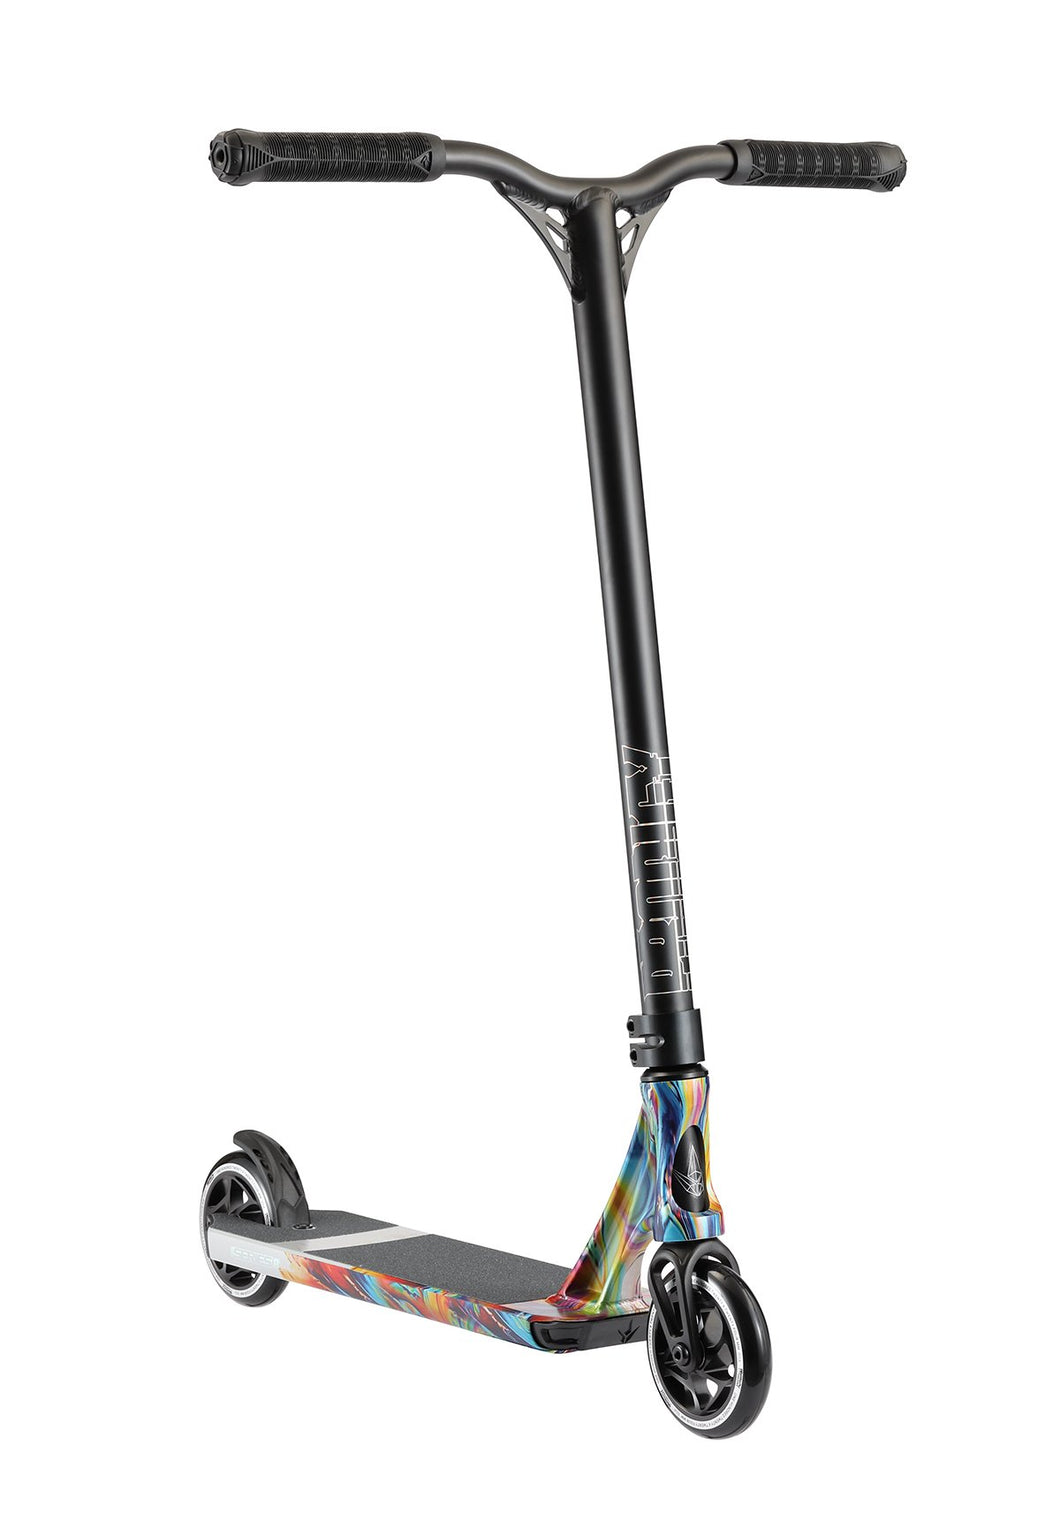 Blunt Envy Prodigy S8 Complete Street Stunt Scooter - Swirl